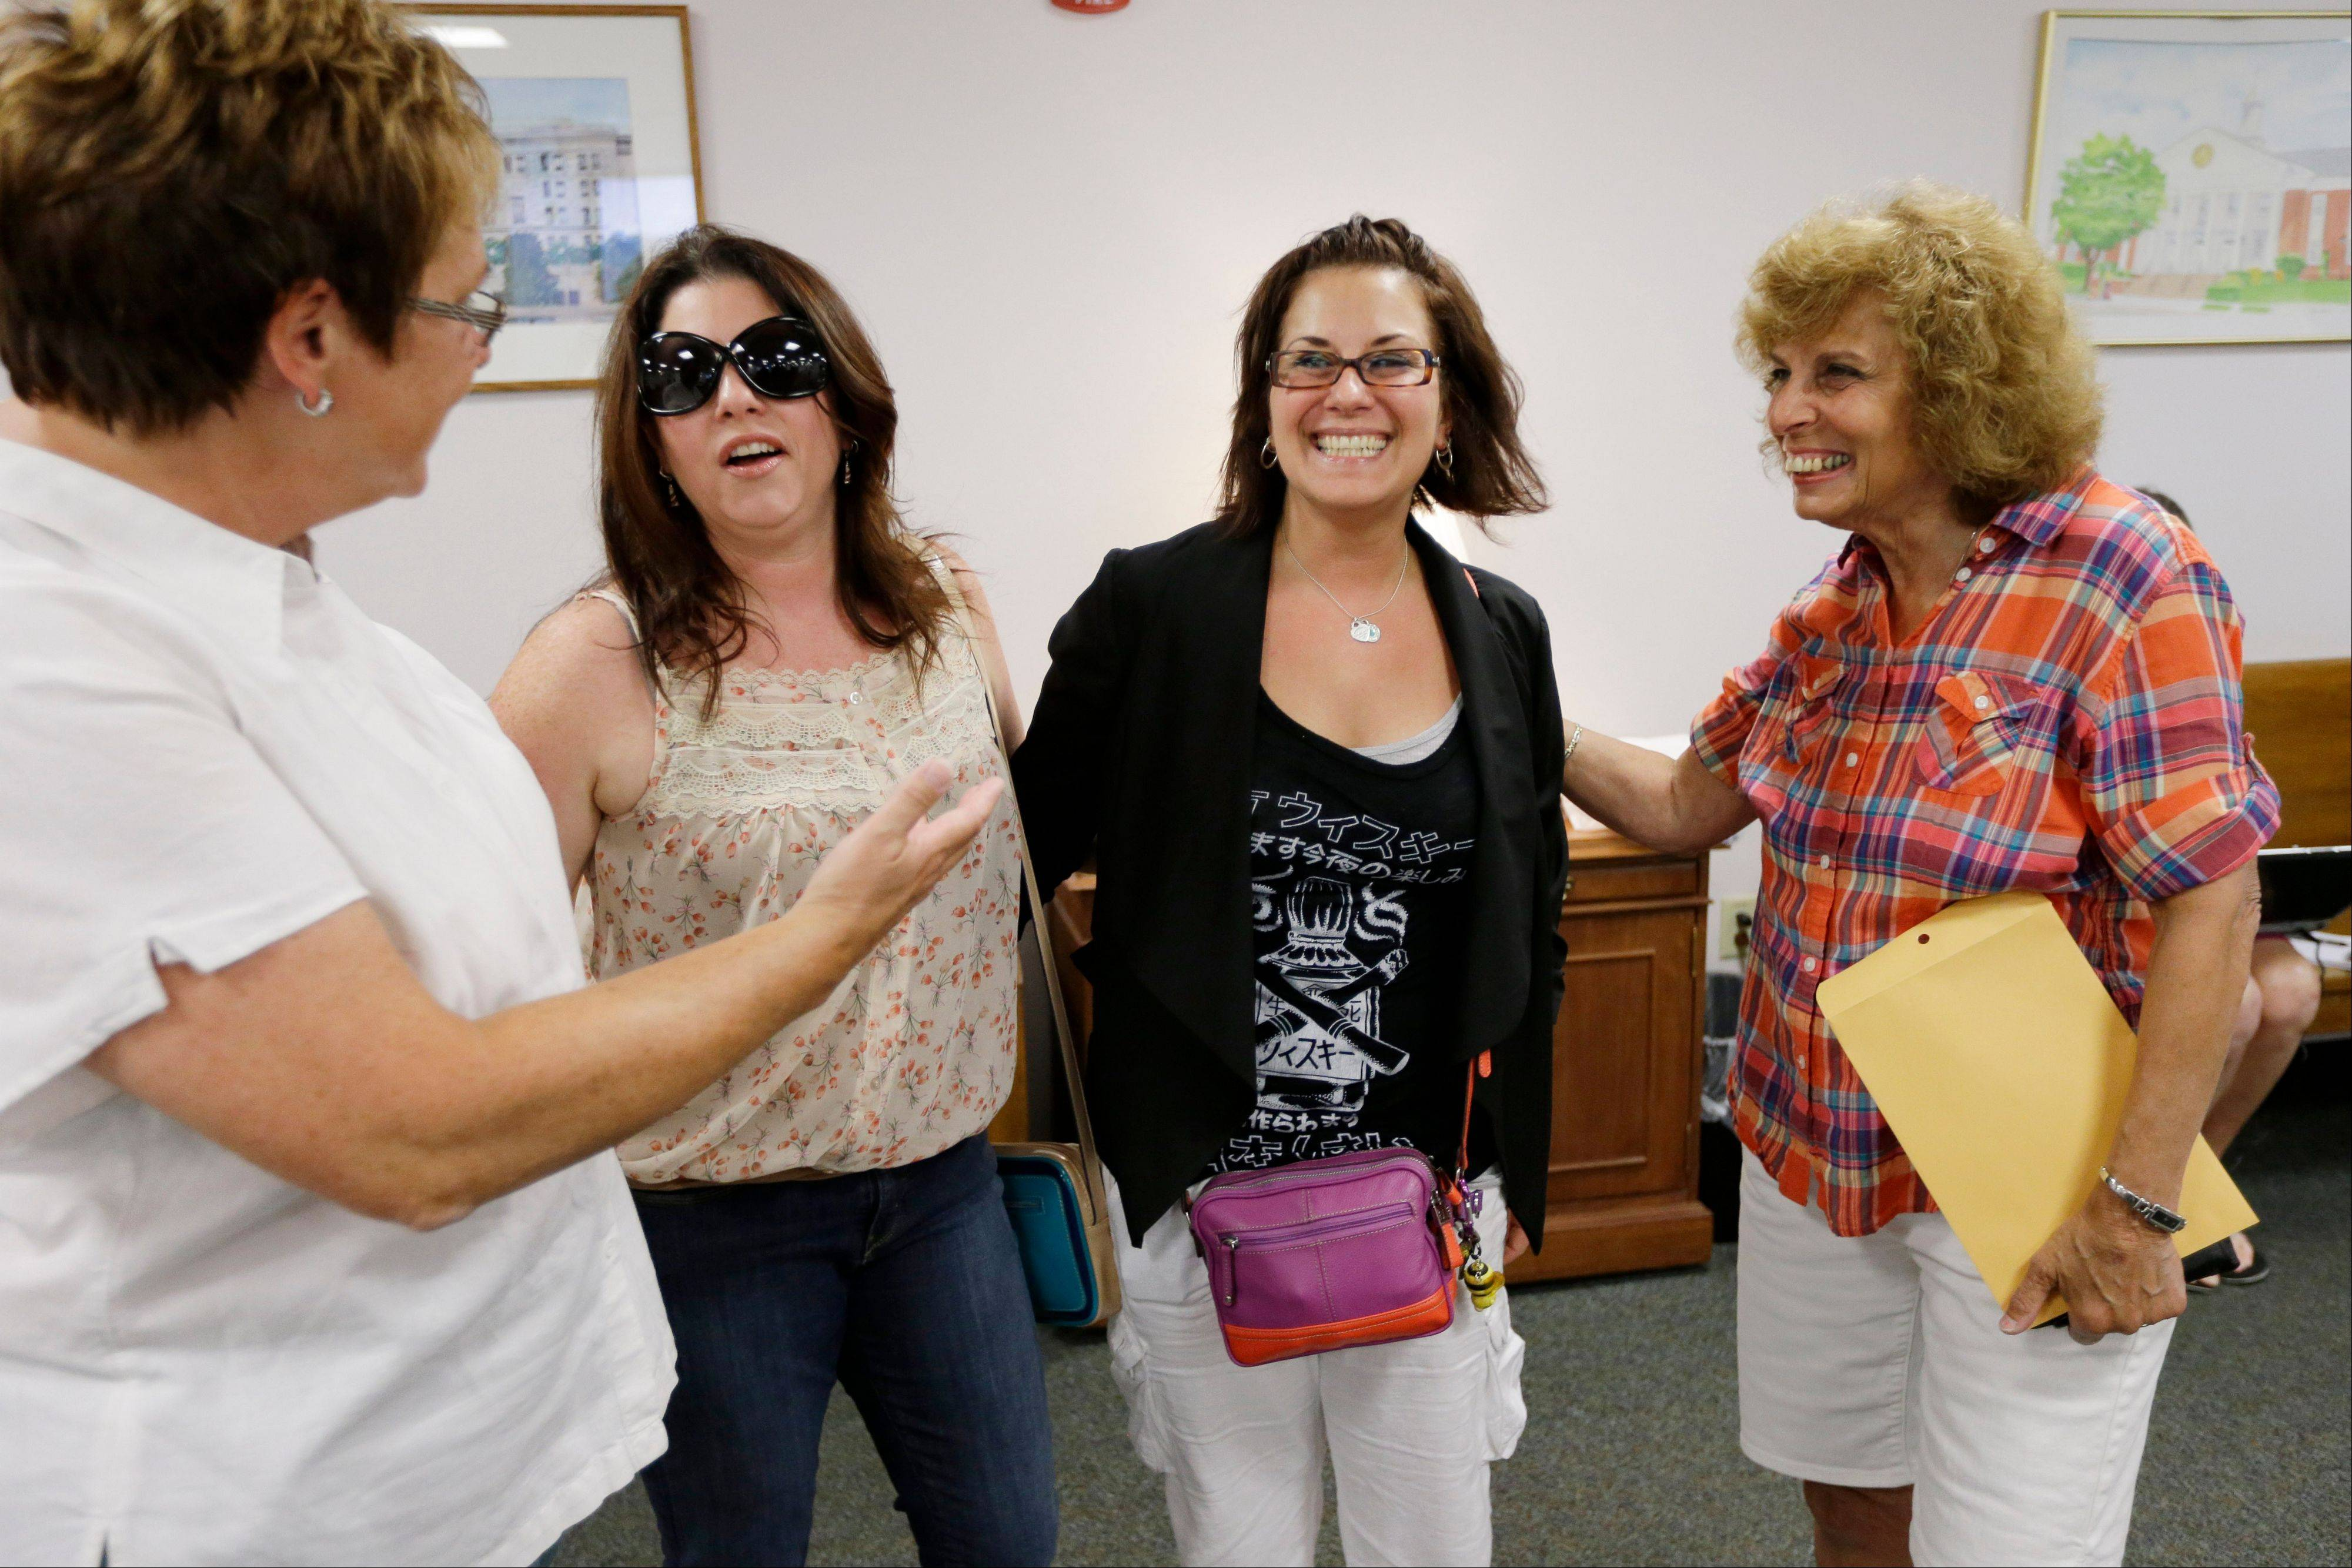 Ellen Toplin, left, and Charlene Kurland, right, who obtained a marriage license at a Montgomery County office despite a state law banning such unions, meet with Nicola Cucinotta, center left, and Tamara Davis before they get their license, Wednesday, July 24, 2013, in Norristown, Pa. Five same-sex couples have obtained marriage licenses in the suburban Philadelphia county that is defying a state ban on such unions.